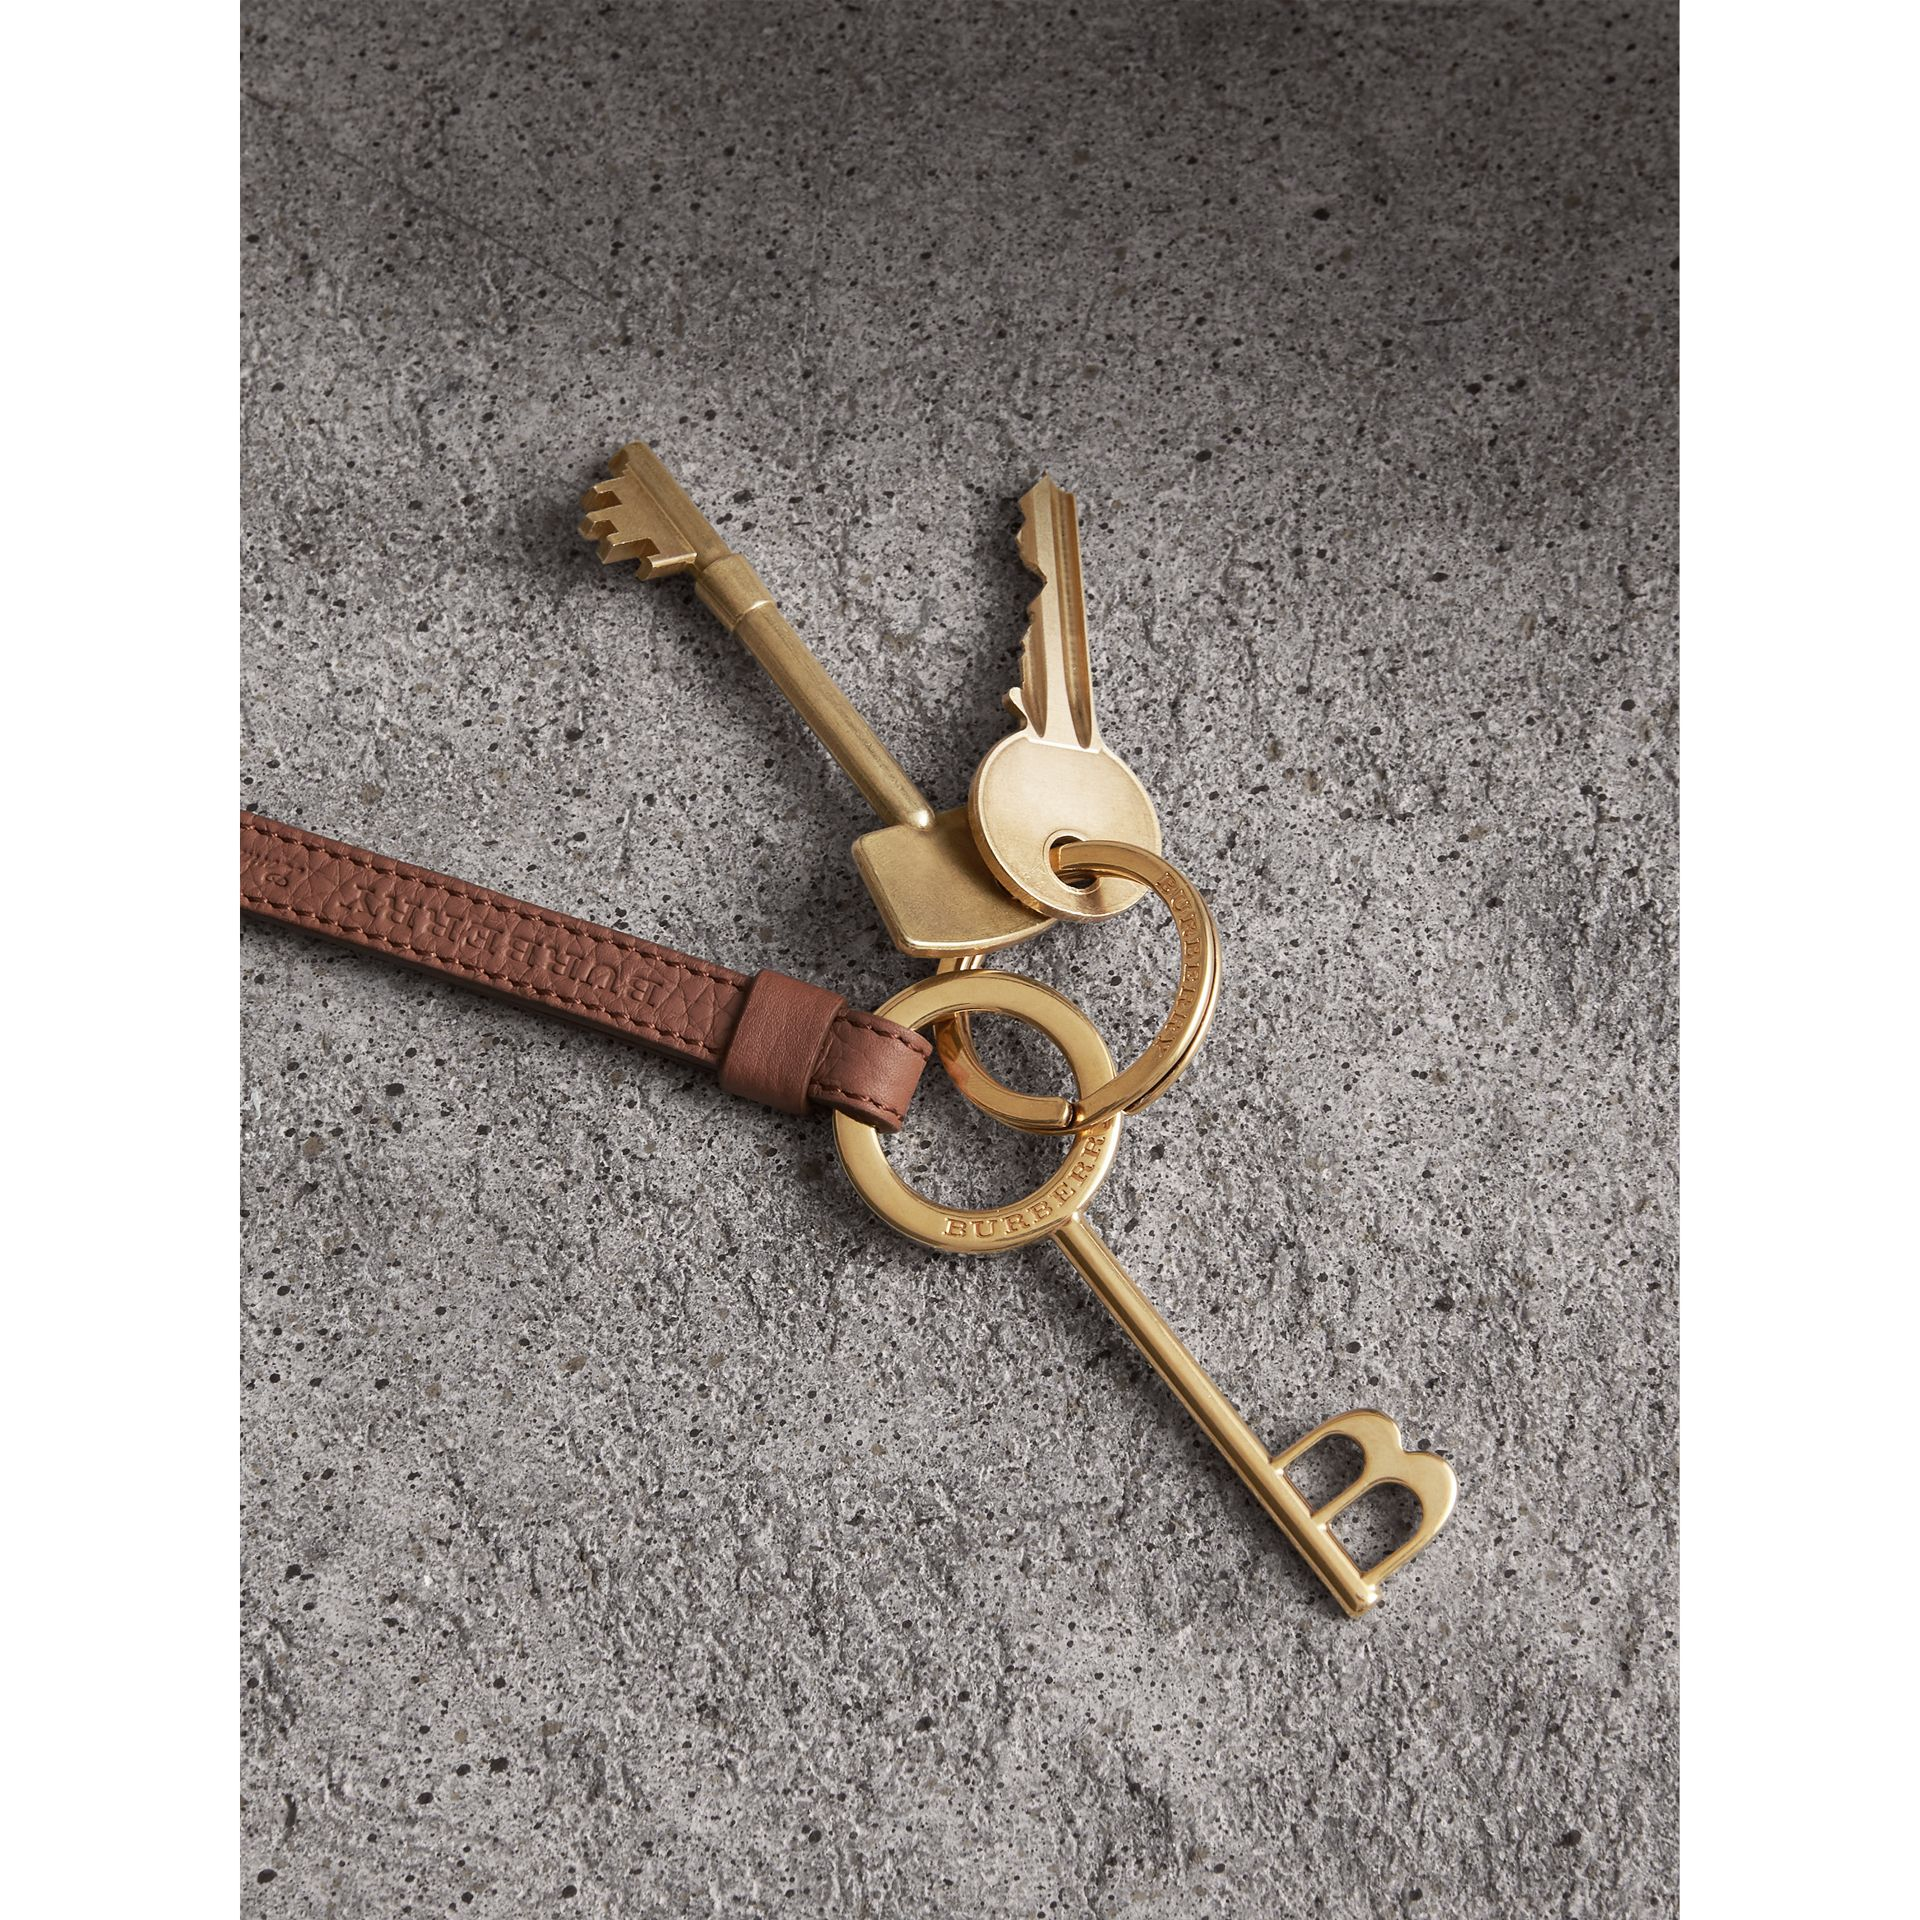 Burberry Motif Metal and Leather Strap Key Charm in Chestnut Brown | Burberry - gallery image 1